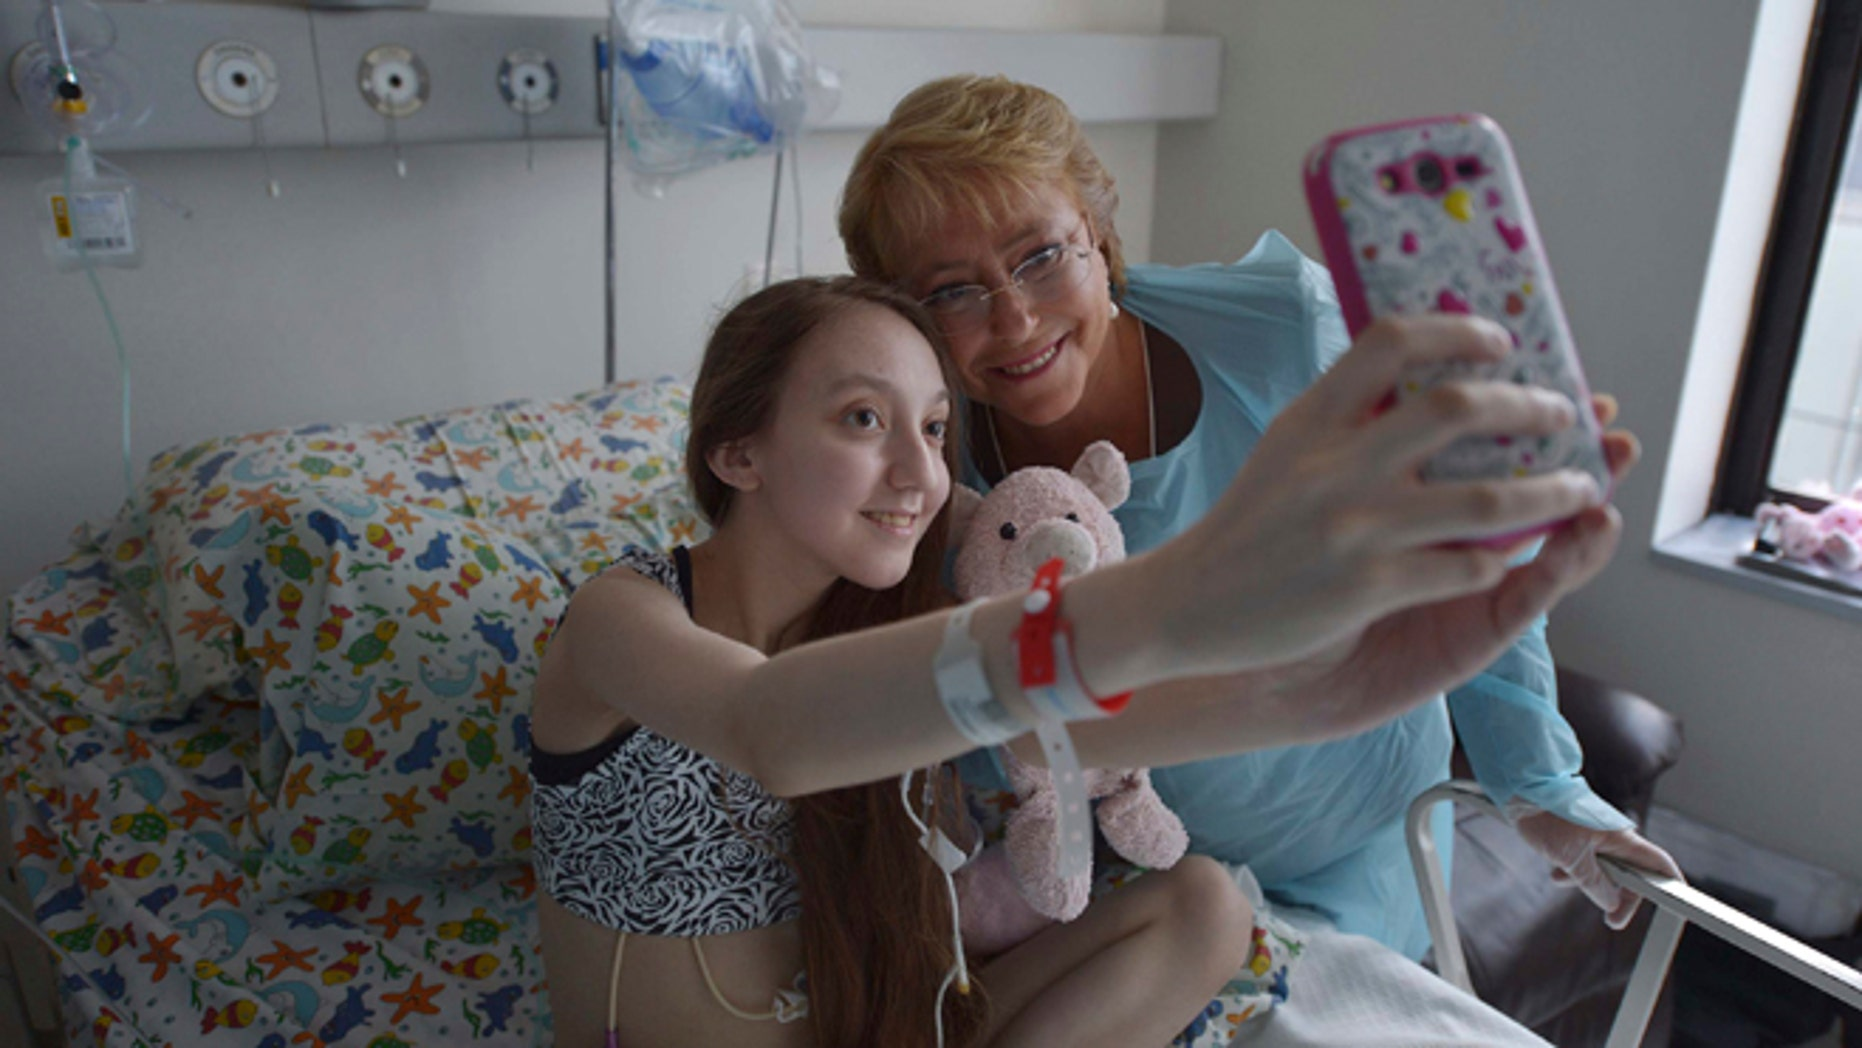 In this Feb 28, 2015 photo released by Chile's Presidential Press Office, Valentina Maureira takes a photo of herself with President Michelle Bachelet, at the Catholic University hospital in Santiago, Chile. The ailing 14-year-old released a video last month in which she asked Bachelet to allow her to be euthanized. Bachelet visited the girl and her family but the government said it could not approve her request. Valentina's father said Sunday, March 22, that people who responded to her plea have led her to change her mind despite her suffering from cystic fibrosis. (AP Photo/Chile Presidential Press Office, Ximena Navarro)